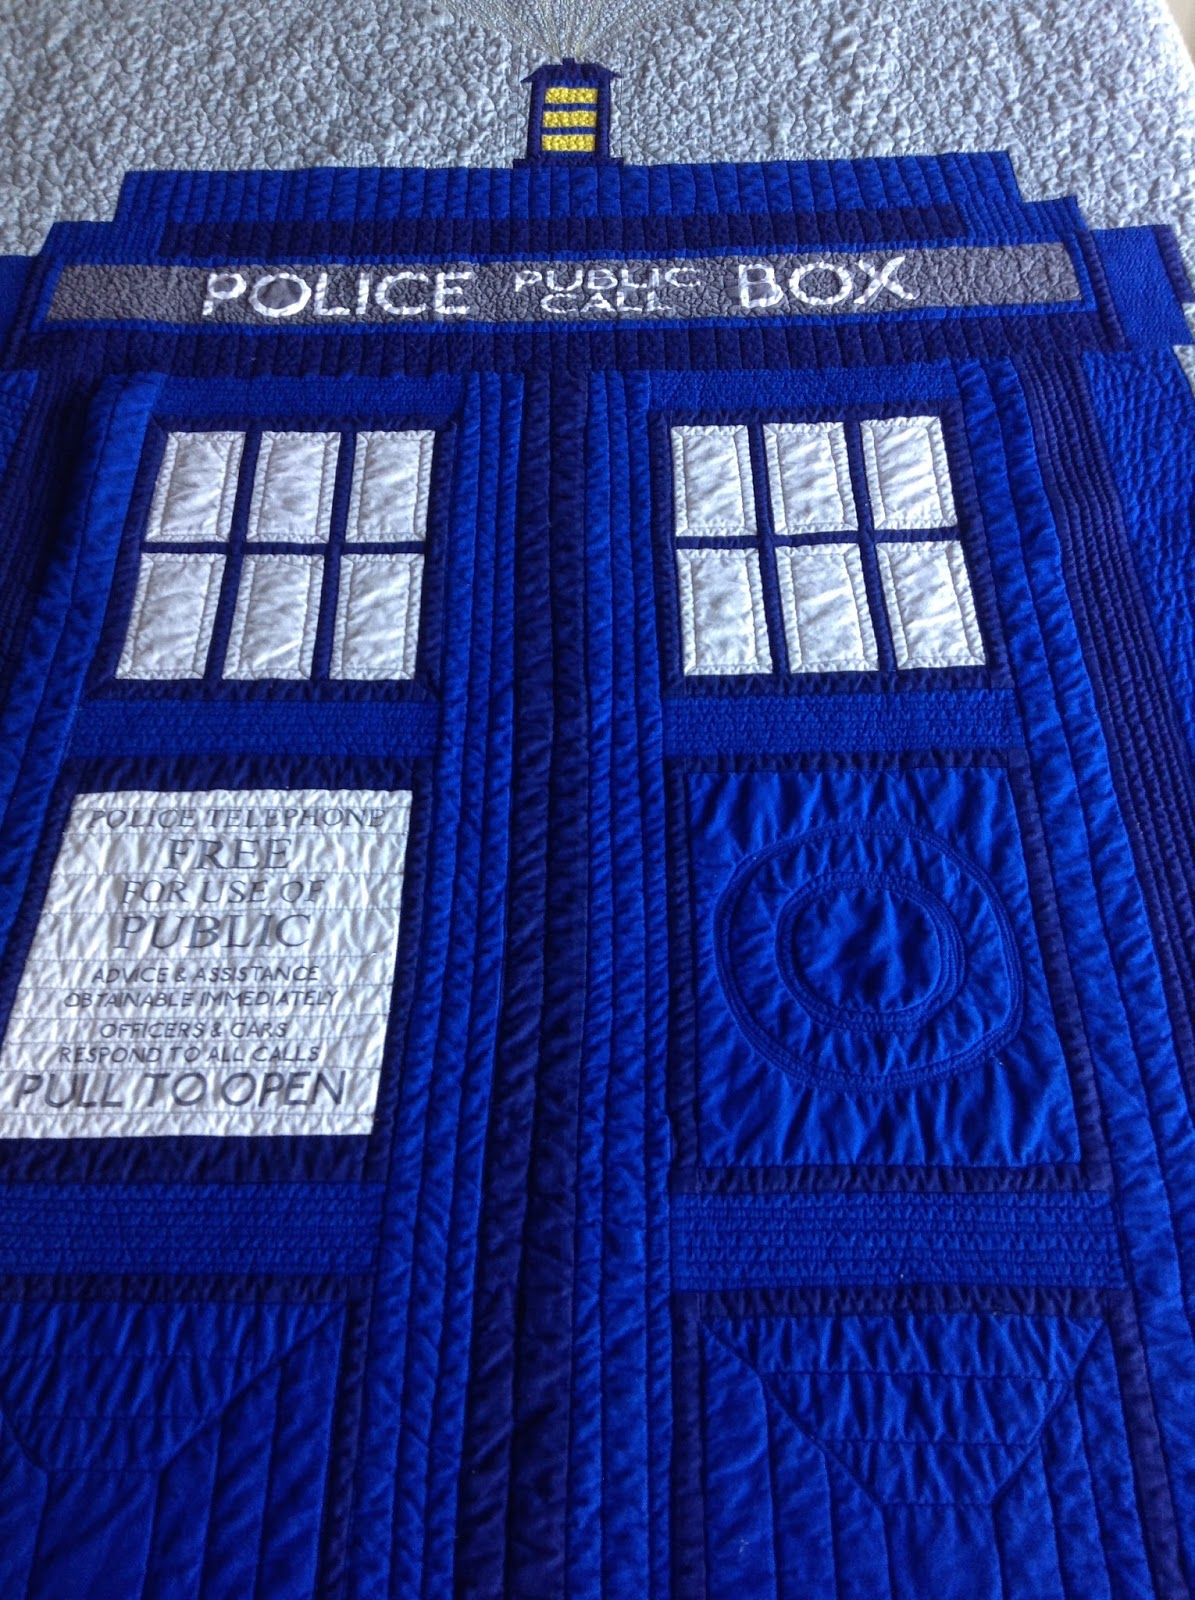 the fifty factor dr who and the tardis quilt the tardis so i could quilt it as